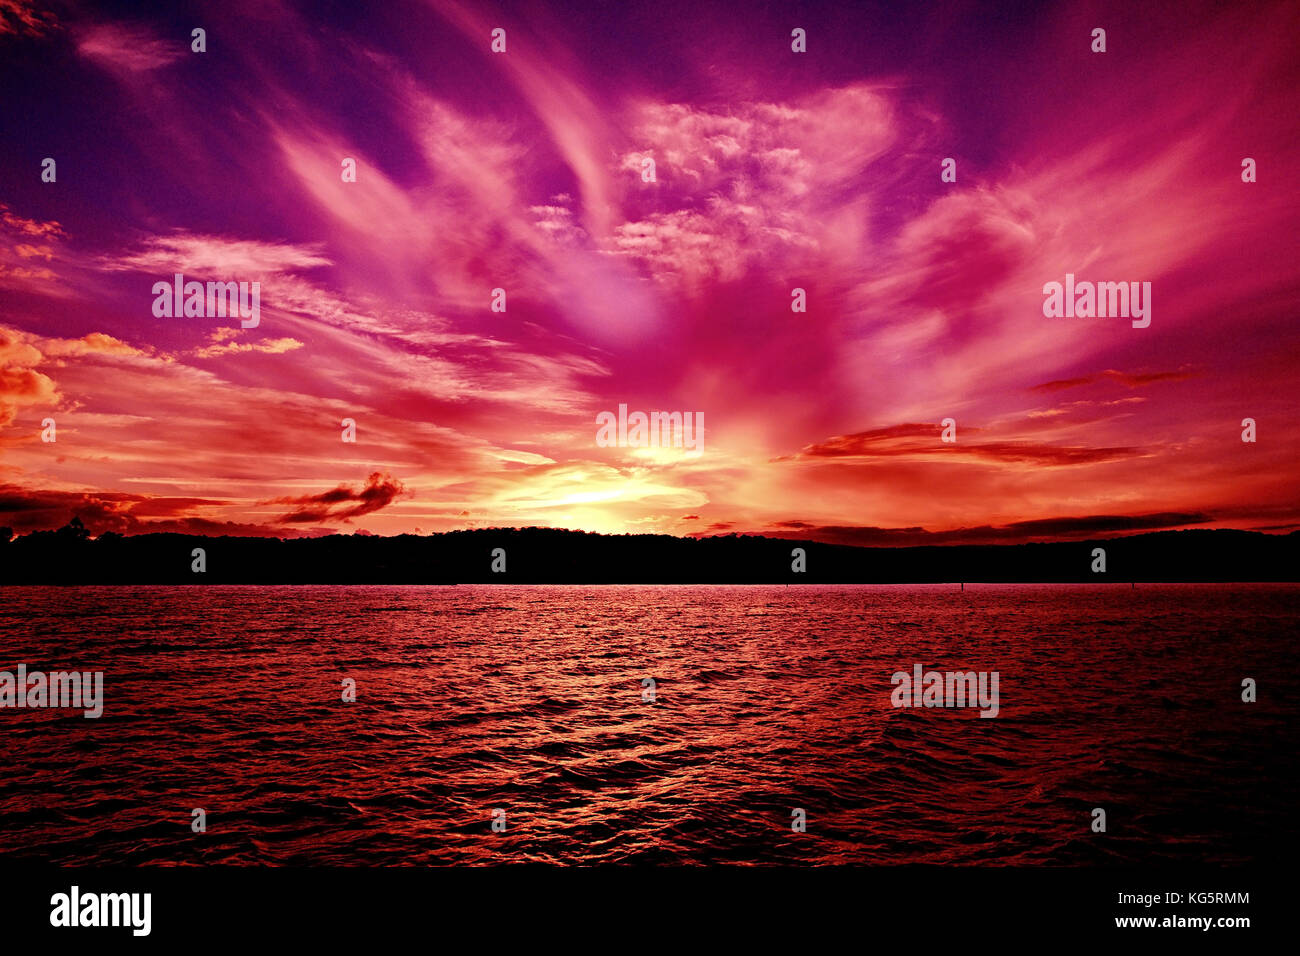 Spectacular vivid pink Orange Violet Ocean Sunset with water reflections. Photographed in Lake Macquarie, NSW, Australia. - Stock Image